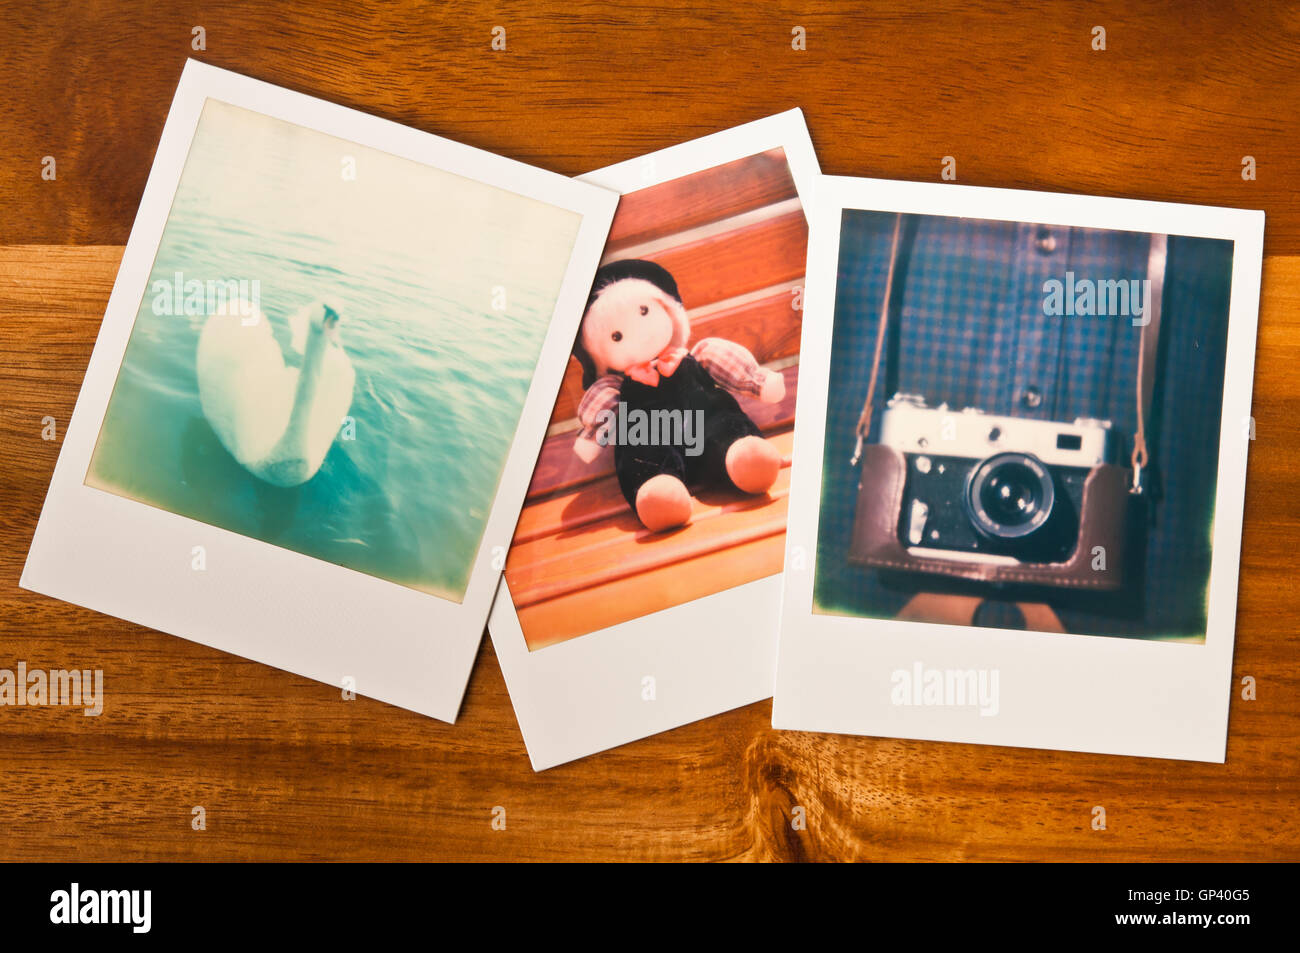 Polaroids photographs - Stock Image